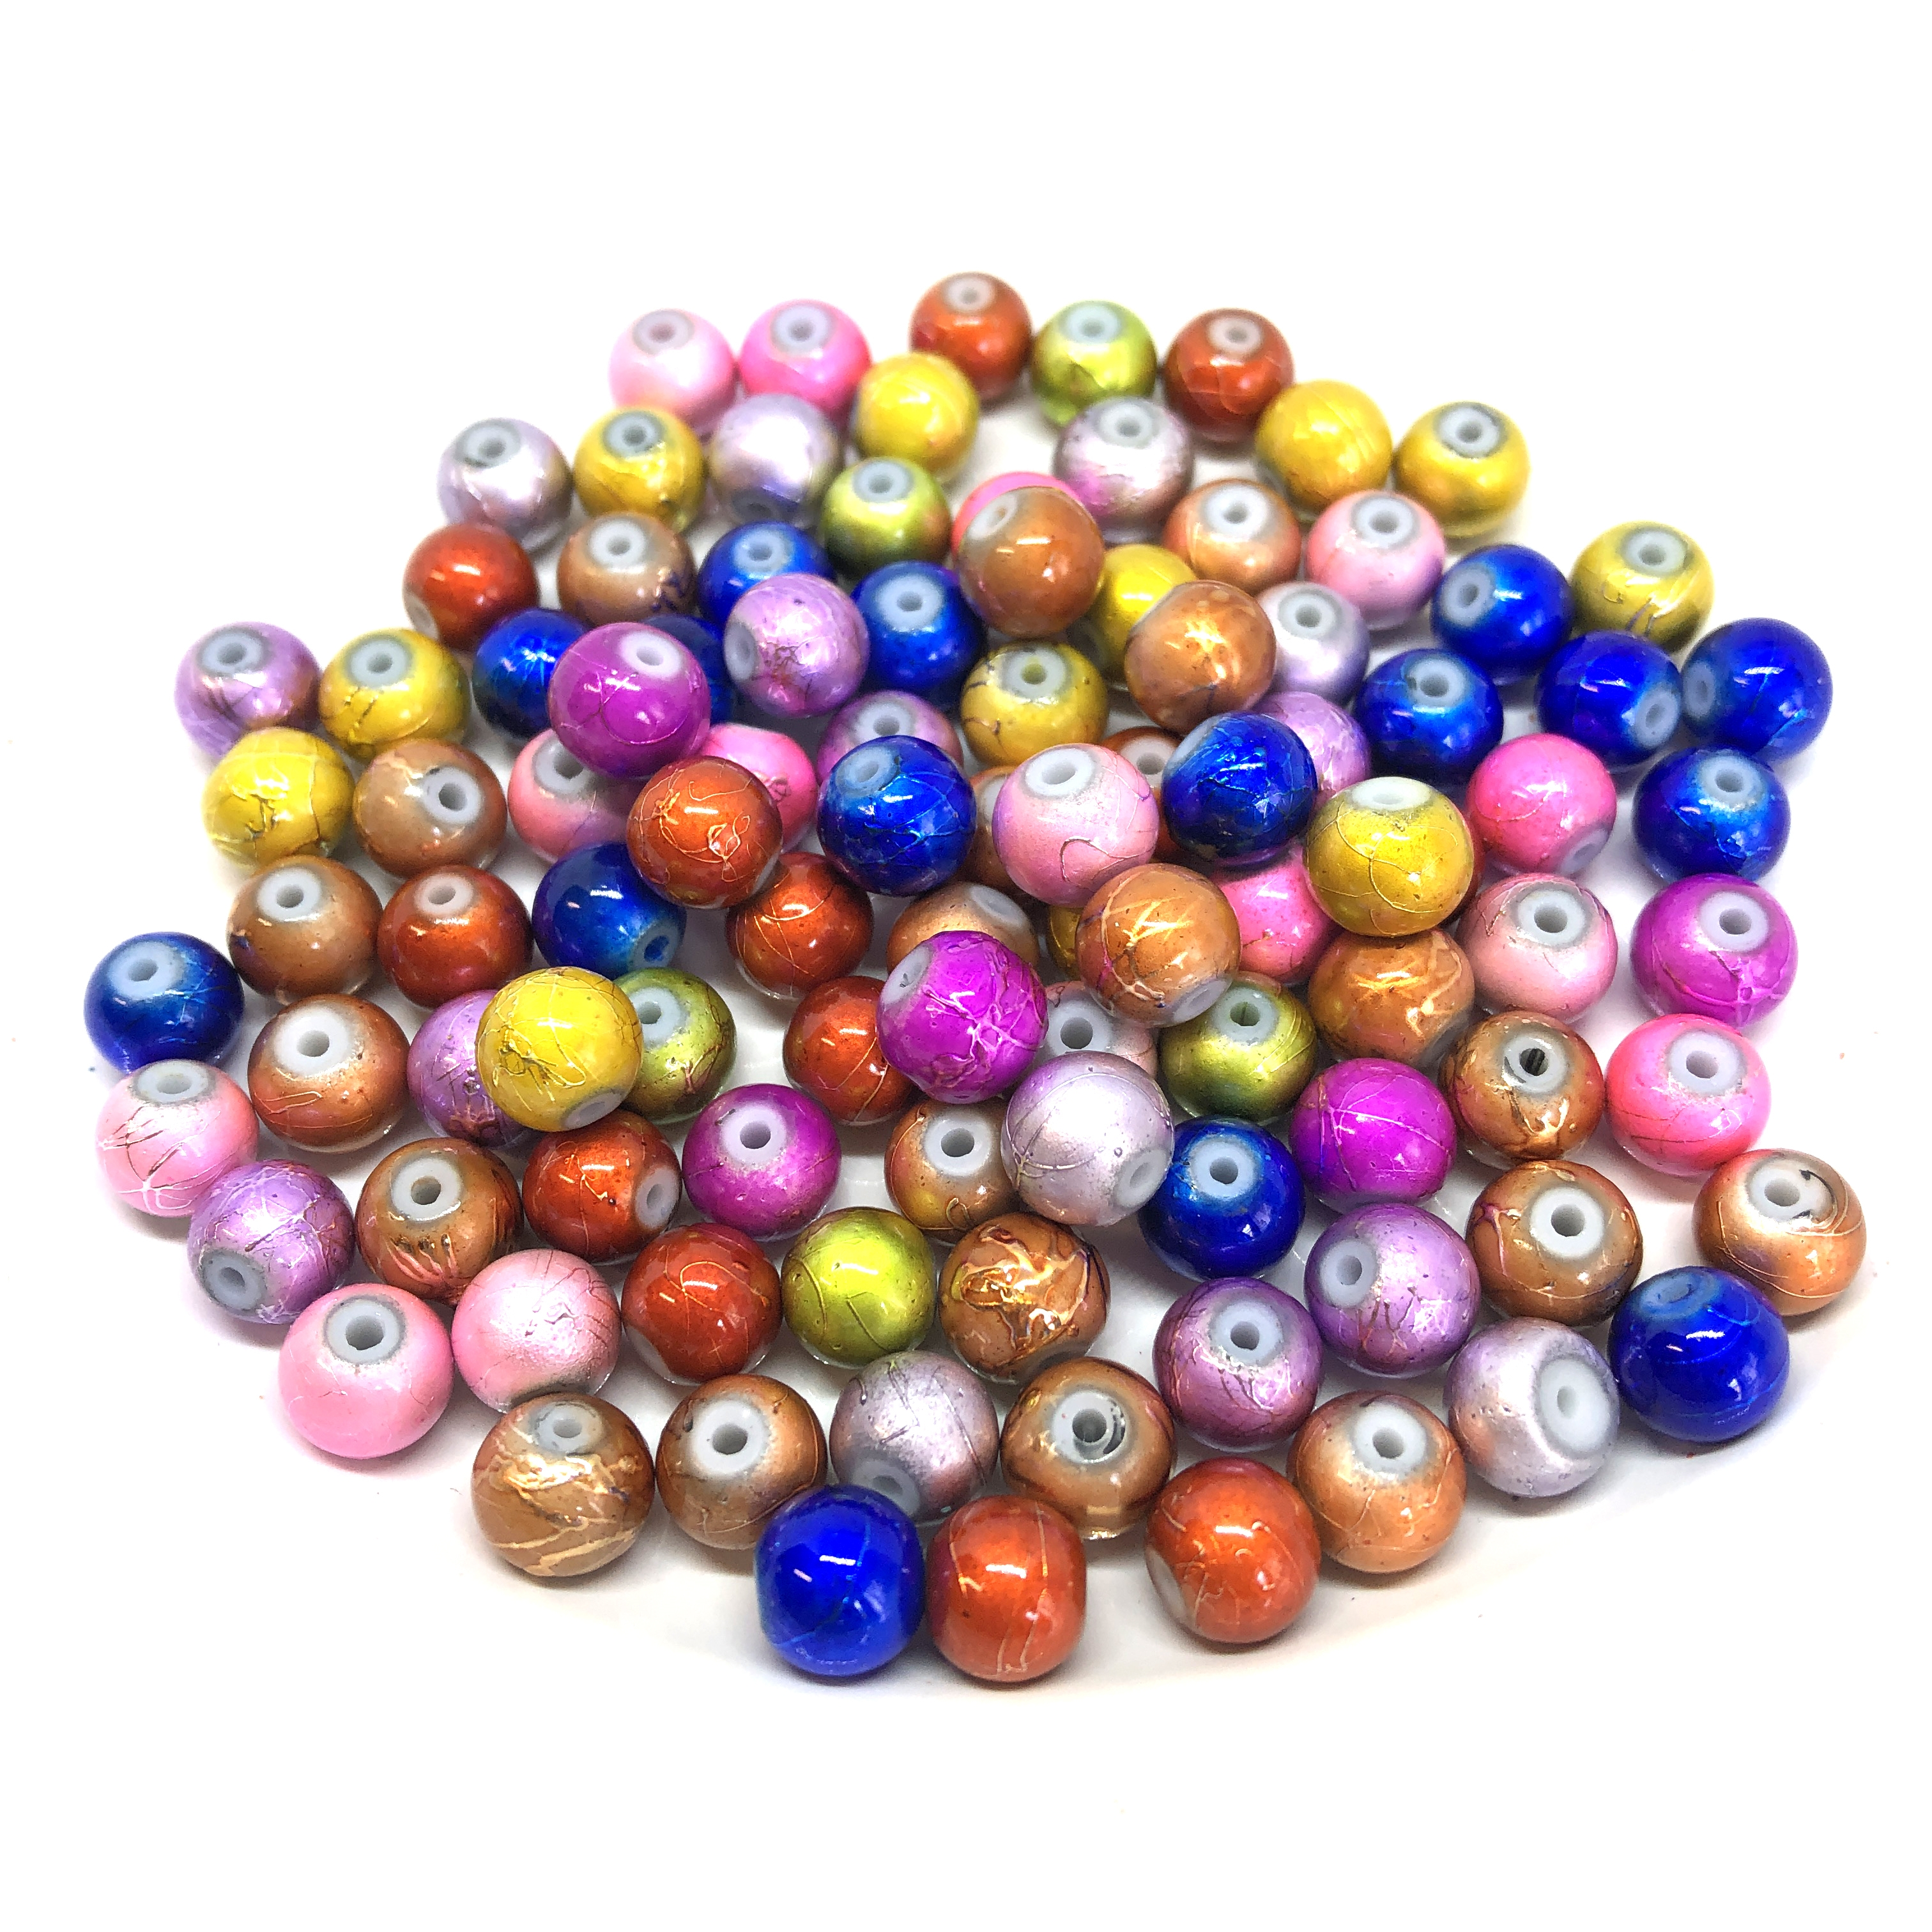 spectra beads, glass beads, jewelry supplies